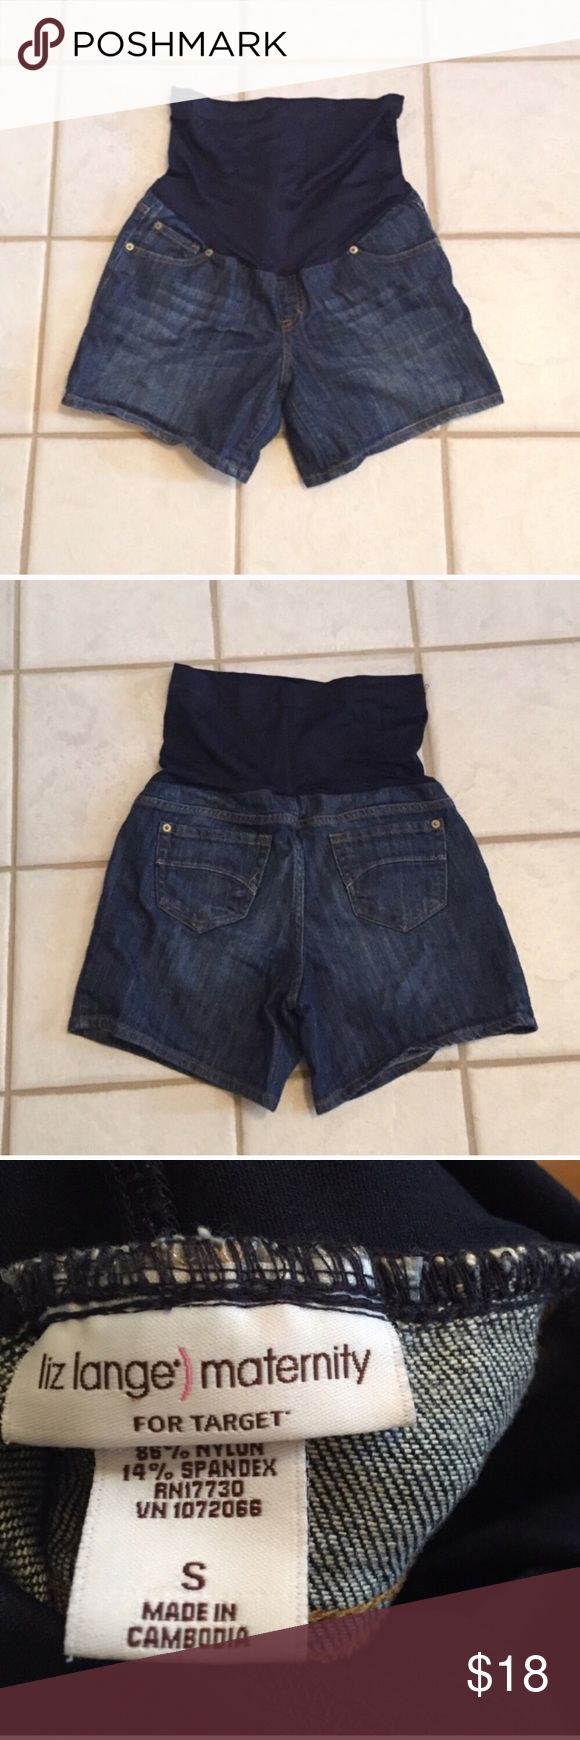 """❣BOGO 1/2 off❣🆕 Liz Lange maternity jean shorts NWOT, flawless. Stretchy. Small. Approx 5"""" inseam. ❤Please check out my other maternity listings & bundle to save! ❣Ask me how to BOGO HALF price! ✖️I do NOT MODEL✖️ 🔴Bundle to save! 🔴NO TRADES. 🔴REASONABLE offers welcome via offer button. Smoke free home. Fast shipping! Liz Lange for Target Shorts Jean Shorts"""